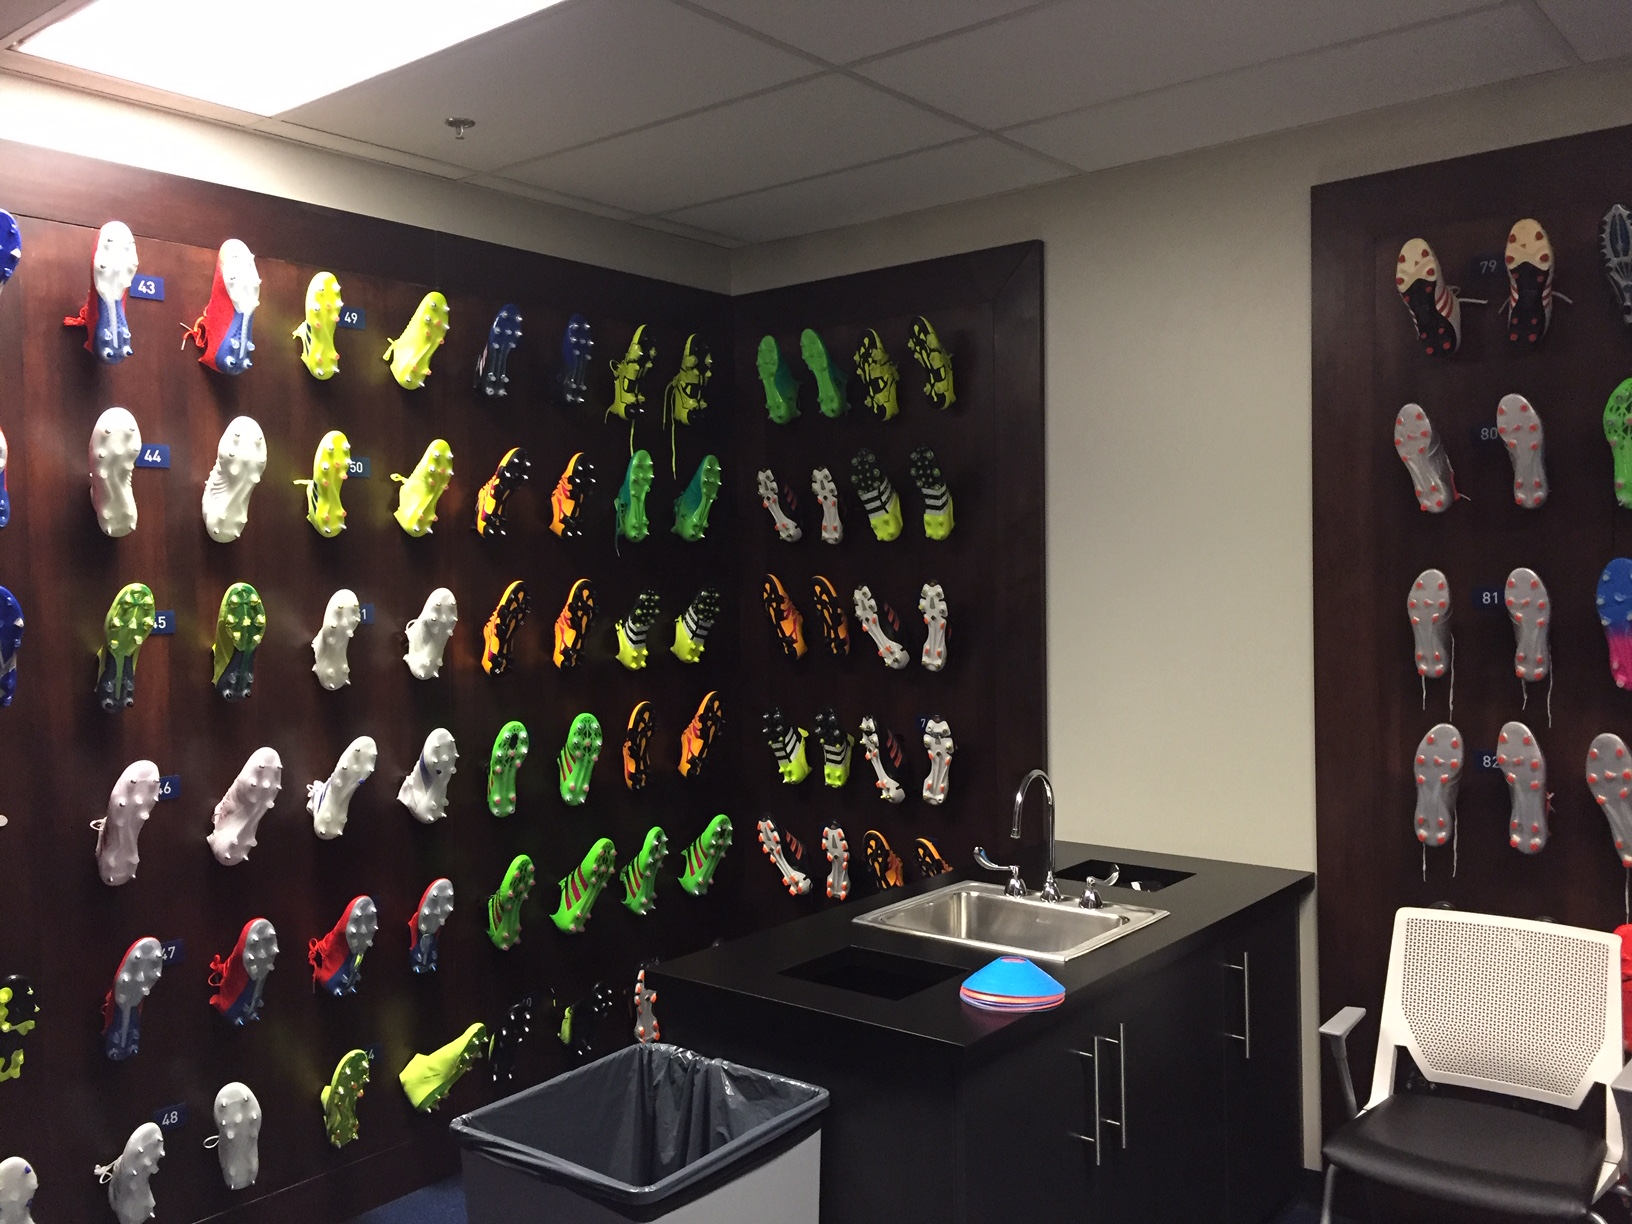 Wall of cleats, located next to Sporting Kansas City's locker room (Photo by J. Schafer)